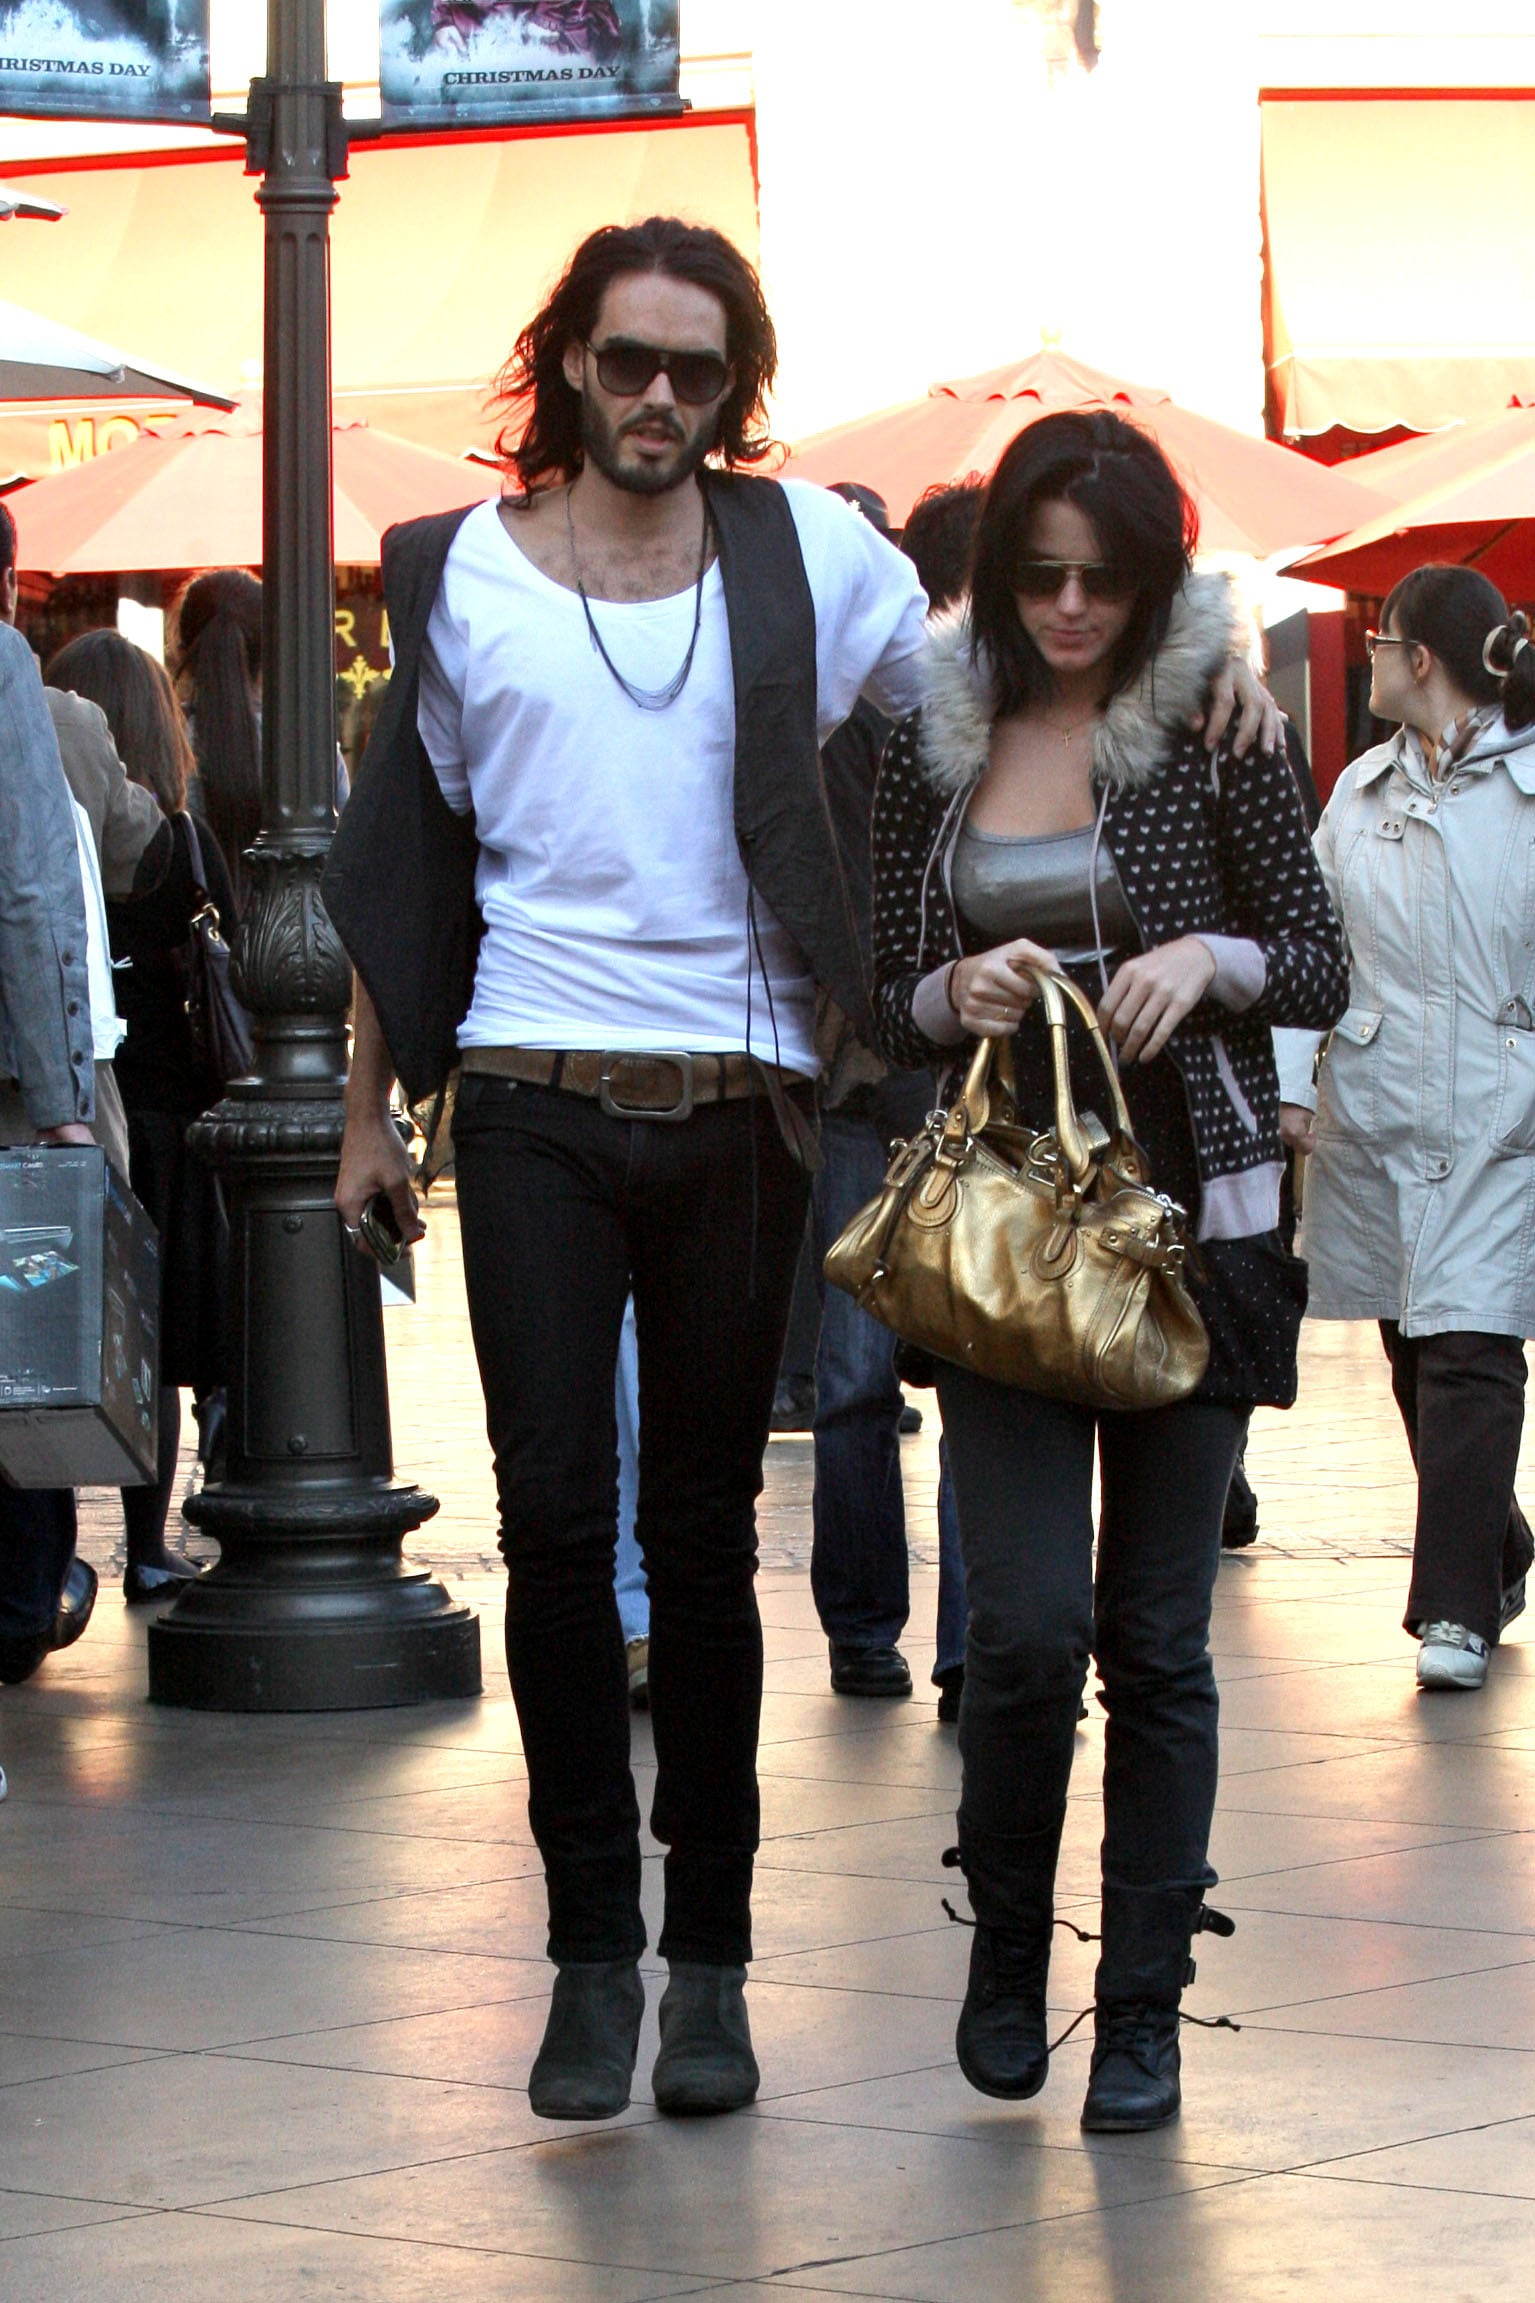 la russell dating Russell brand spotted out and about with isabella brewster in la | russell brand has been spotted with former love isabella brewsterthe 37-year-old comedian briefly dated the 27-year-old.